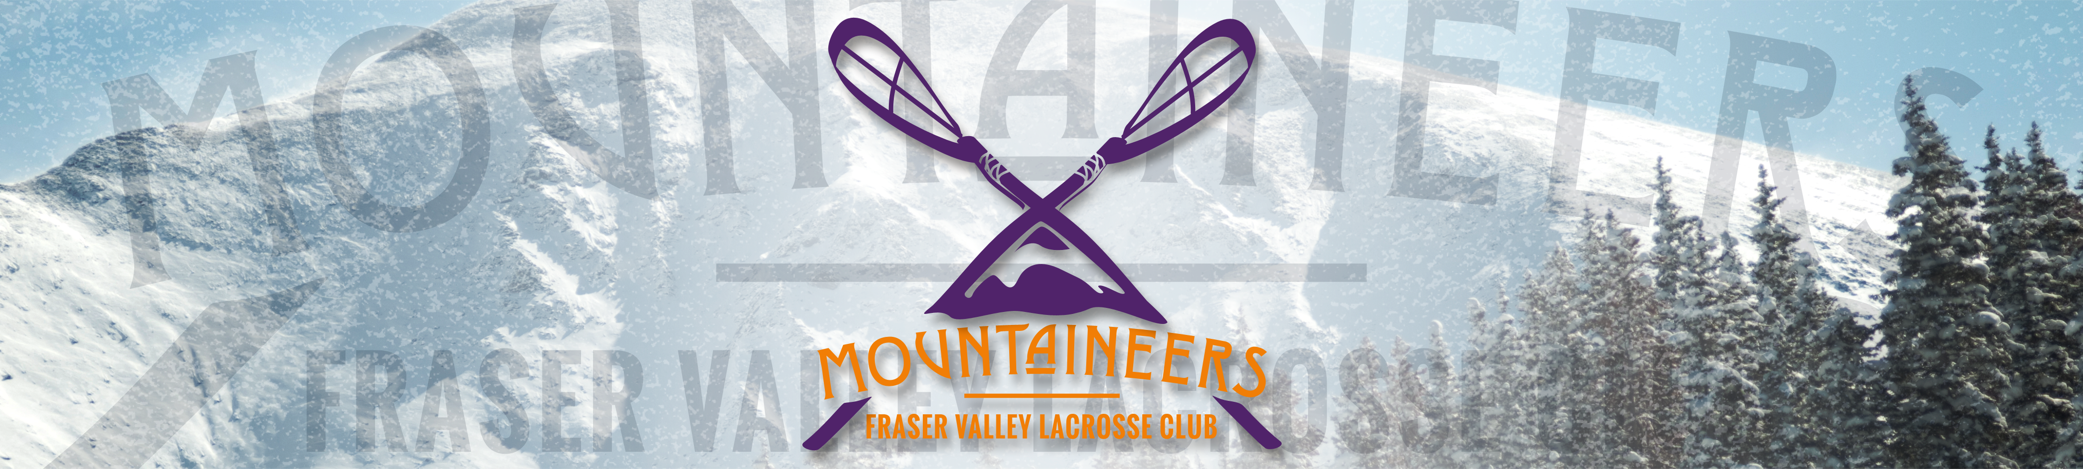 Fraser Valley Lacrosse Club, Lacrosse, Goal, Field